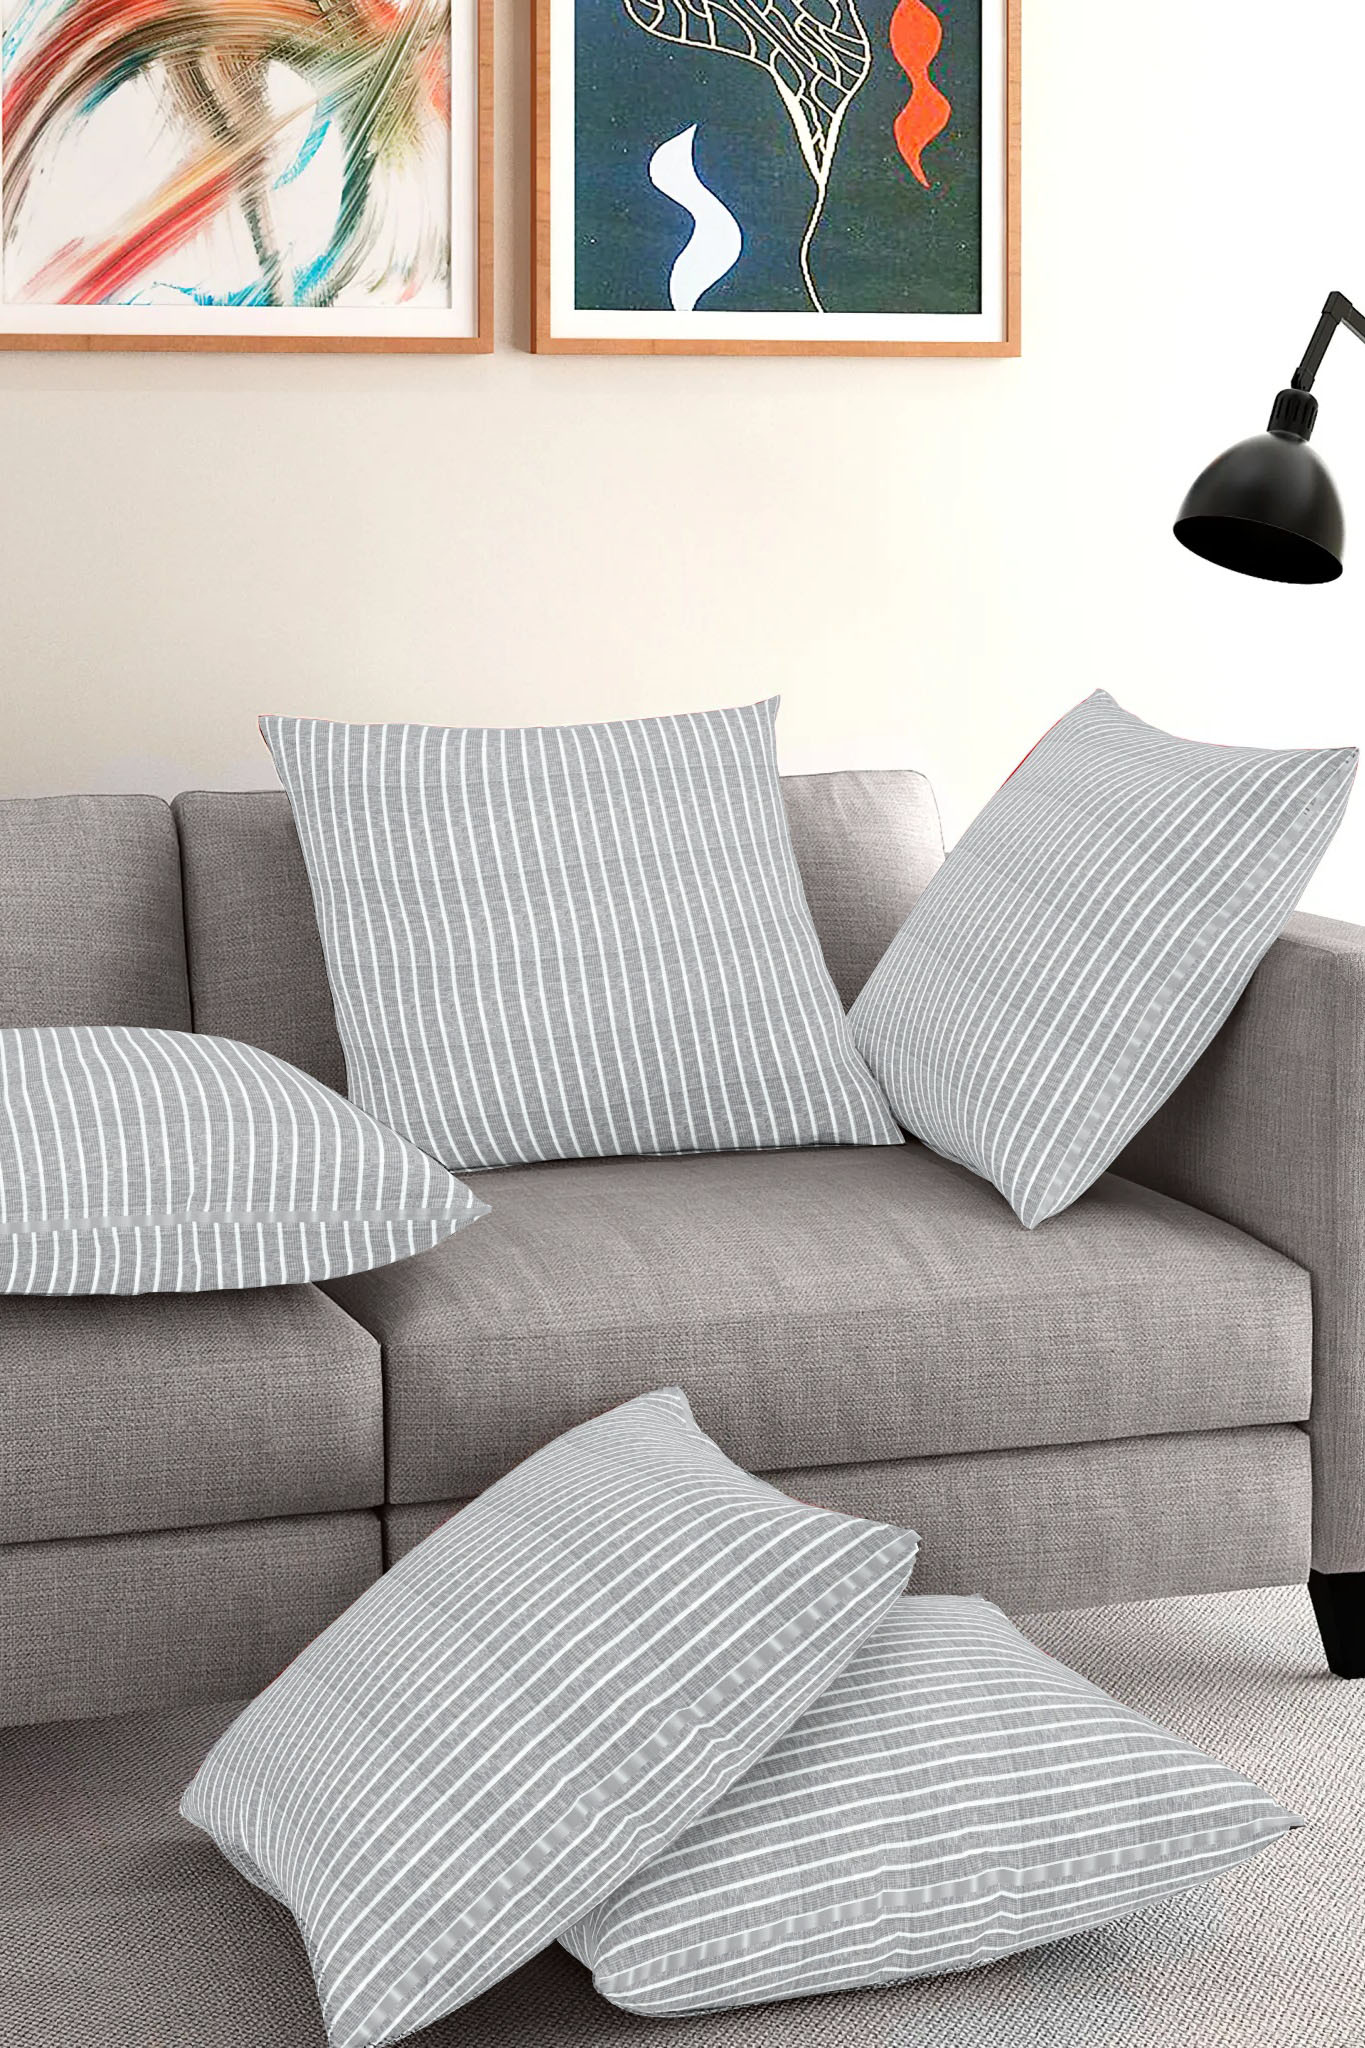 Set of 5-Gray White Cotton Cushion Cover-35392-16x16 Inches